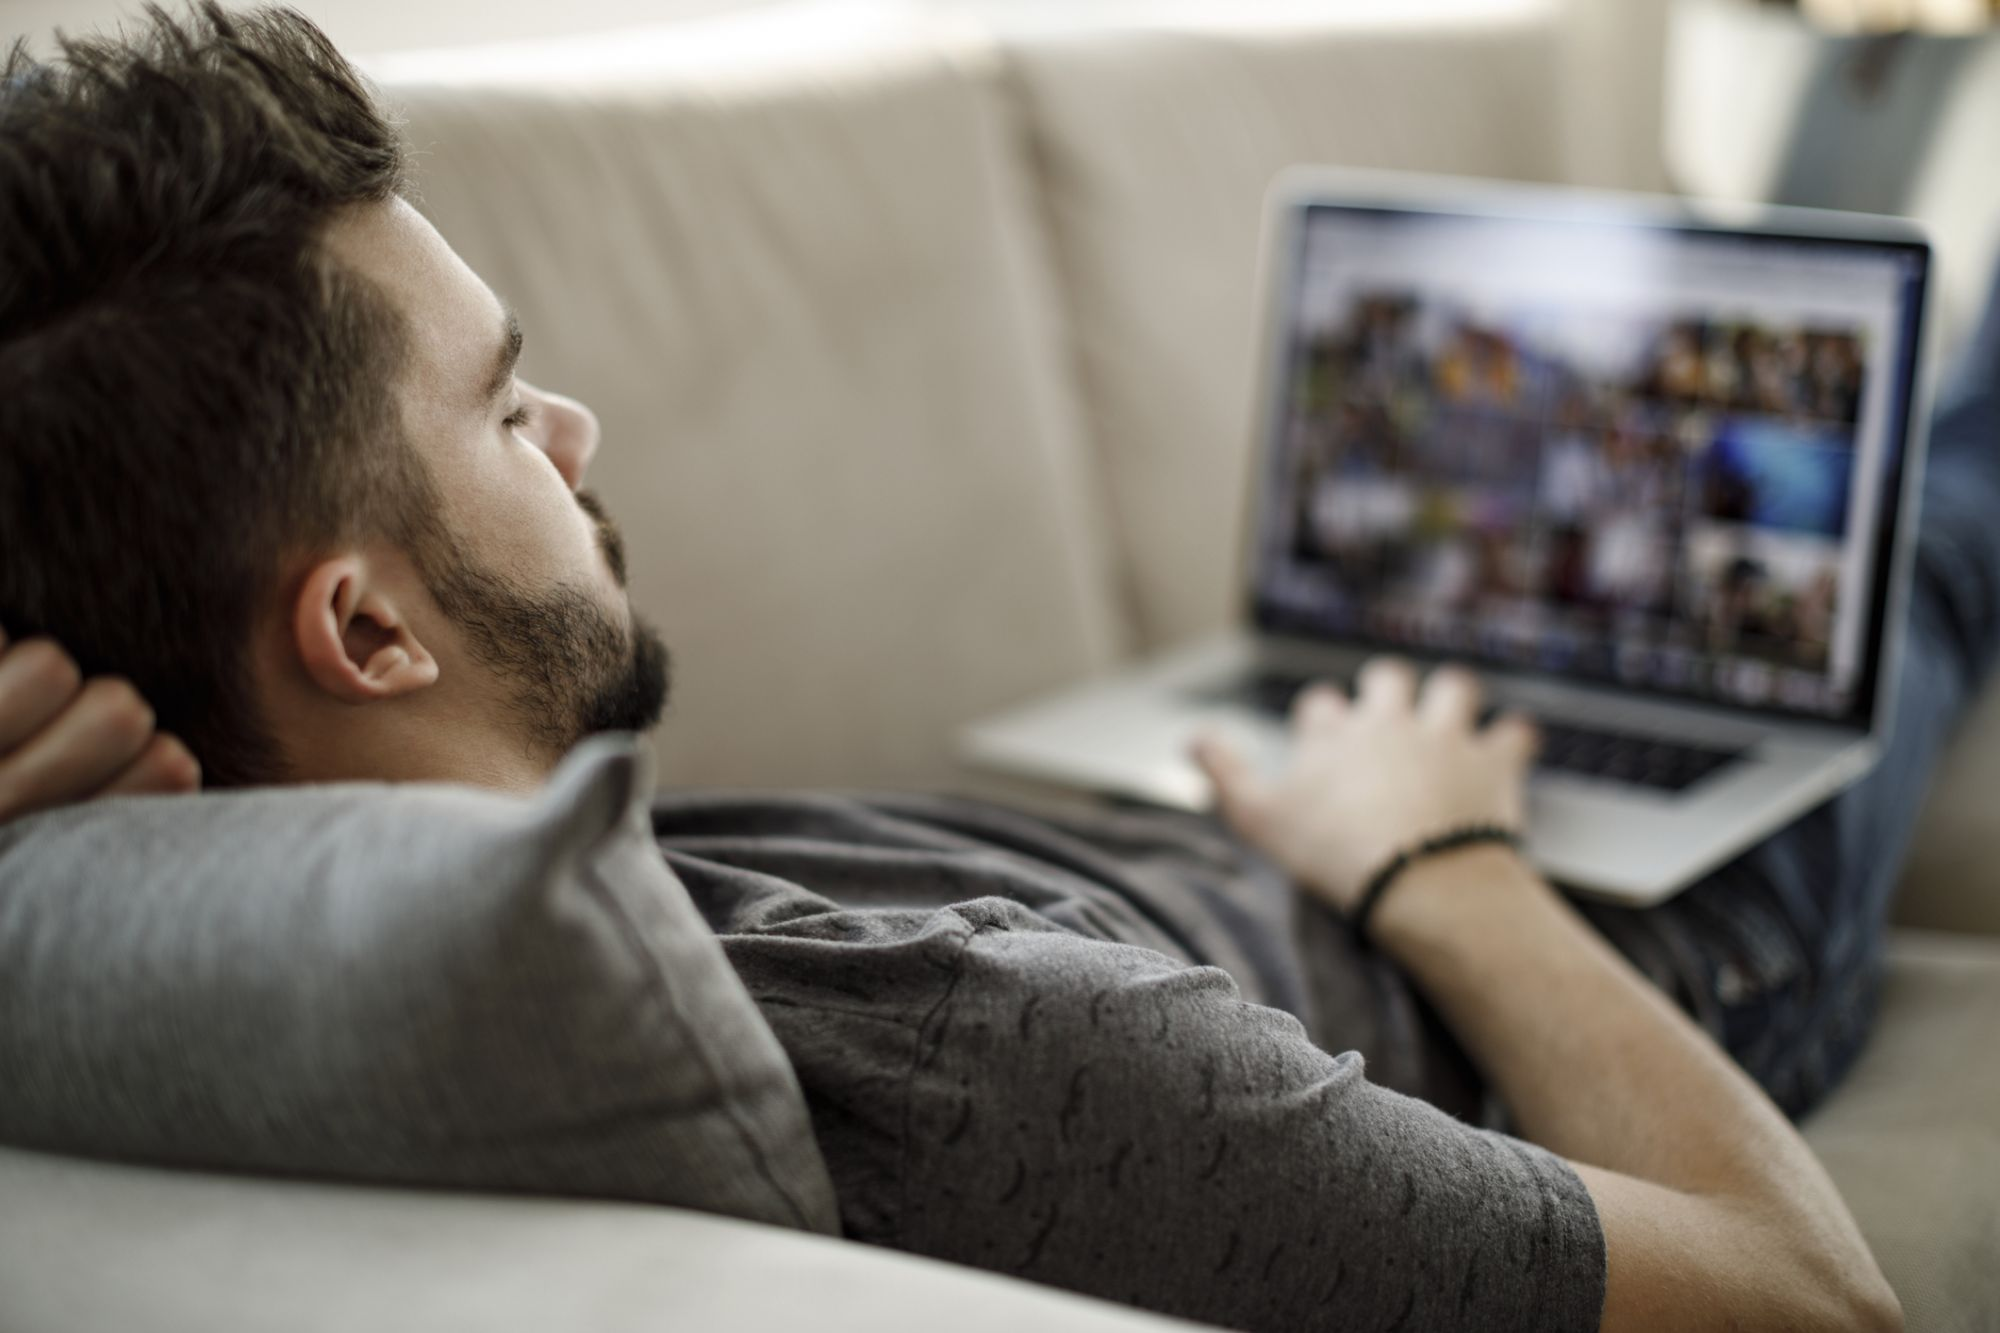 Could Solving Loneliness Be Streaming TV's Next Innovation?